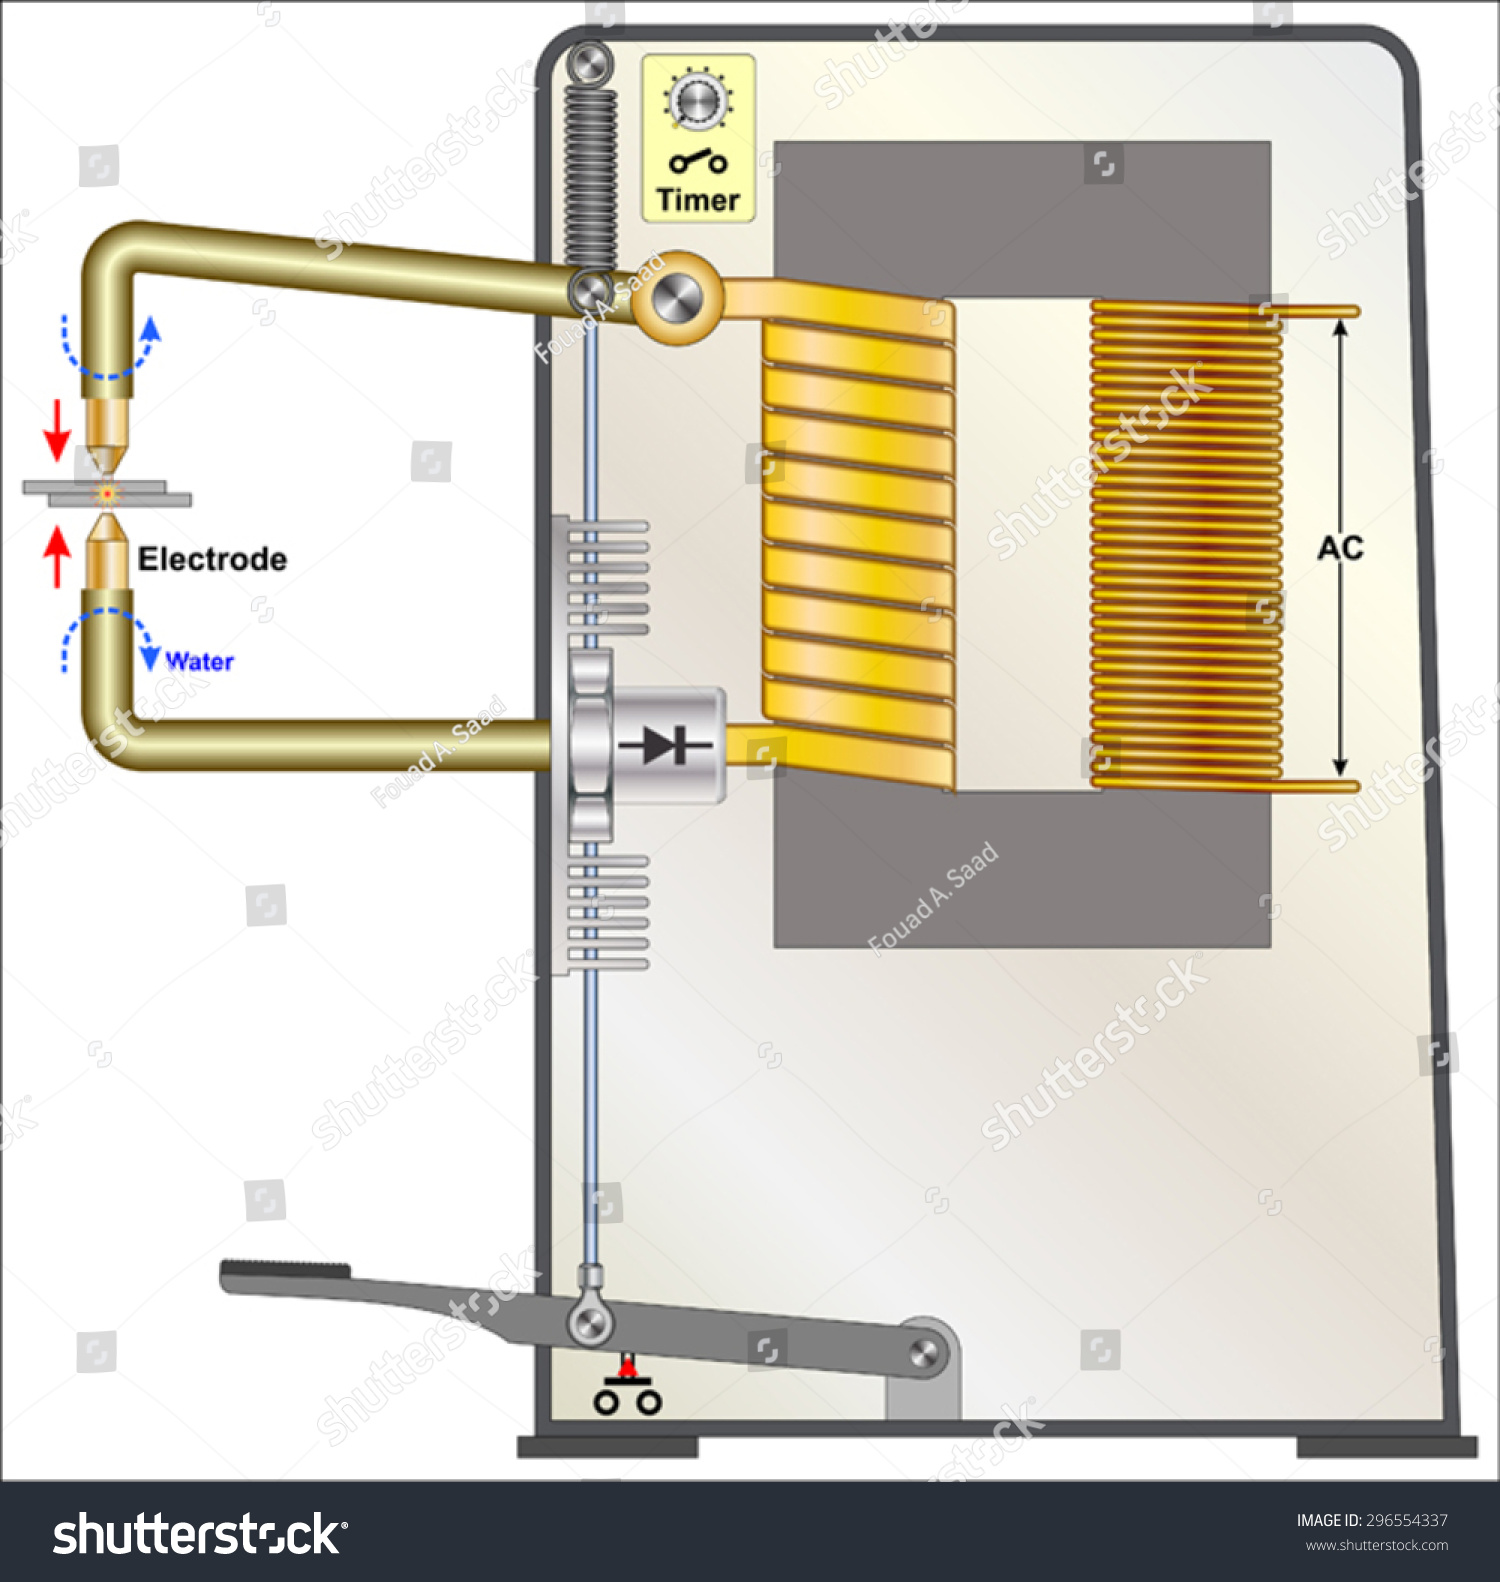 Spot Welding Machine Diagram Schematic Diagrams Resistance Stock Vector Royalty Free Line